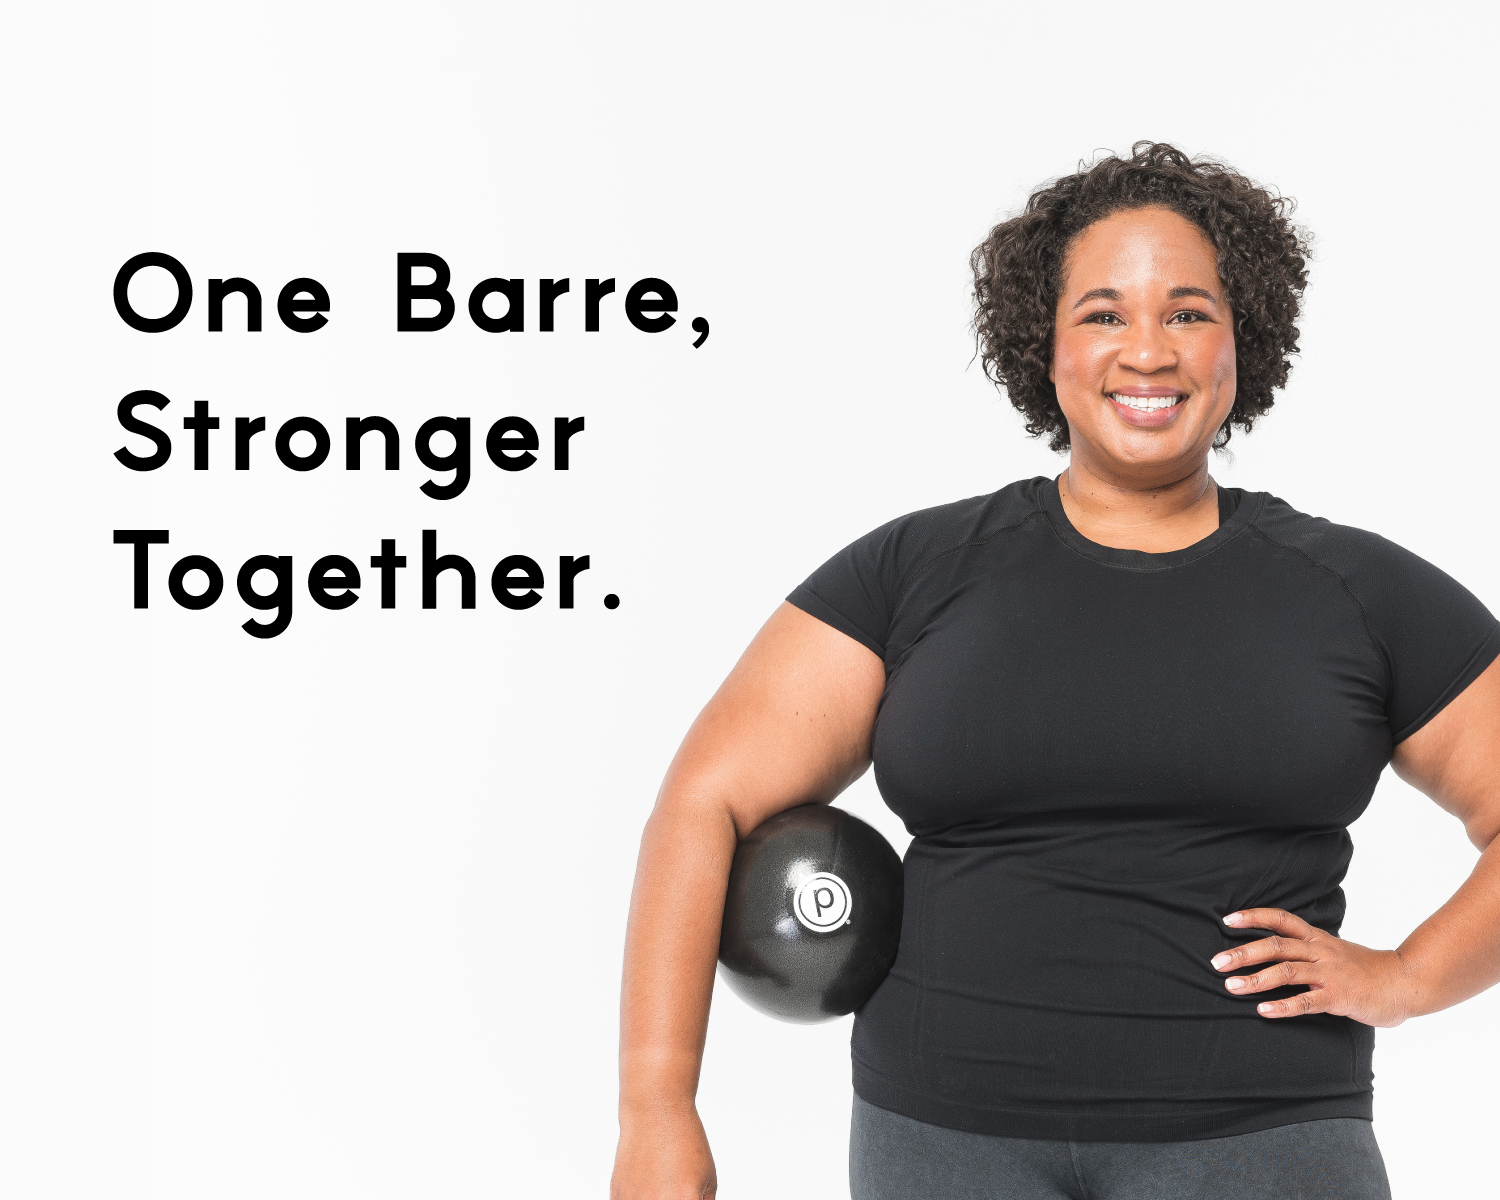 One Barre, Stronger Together